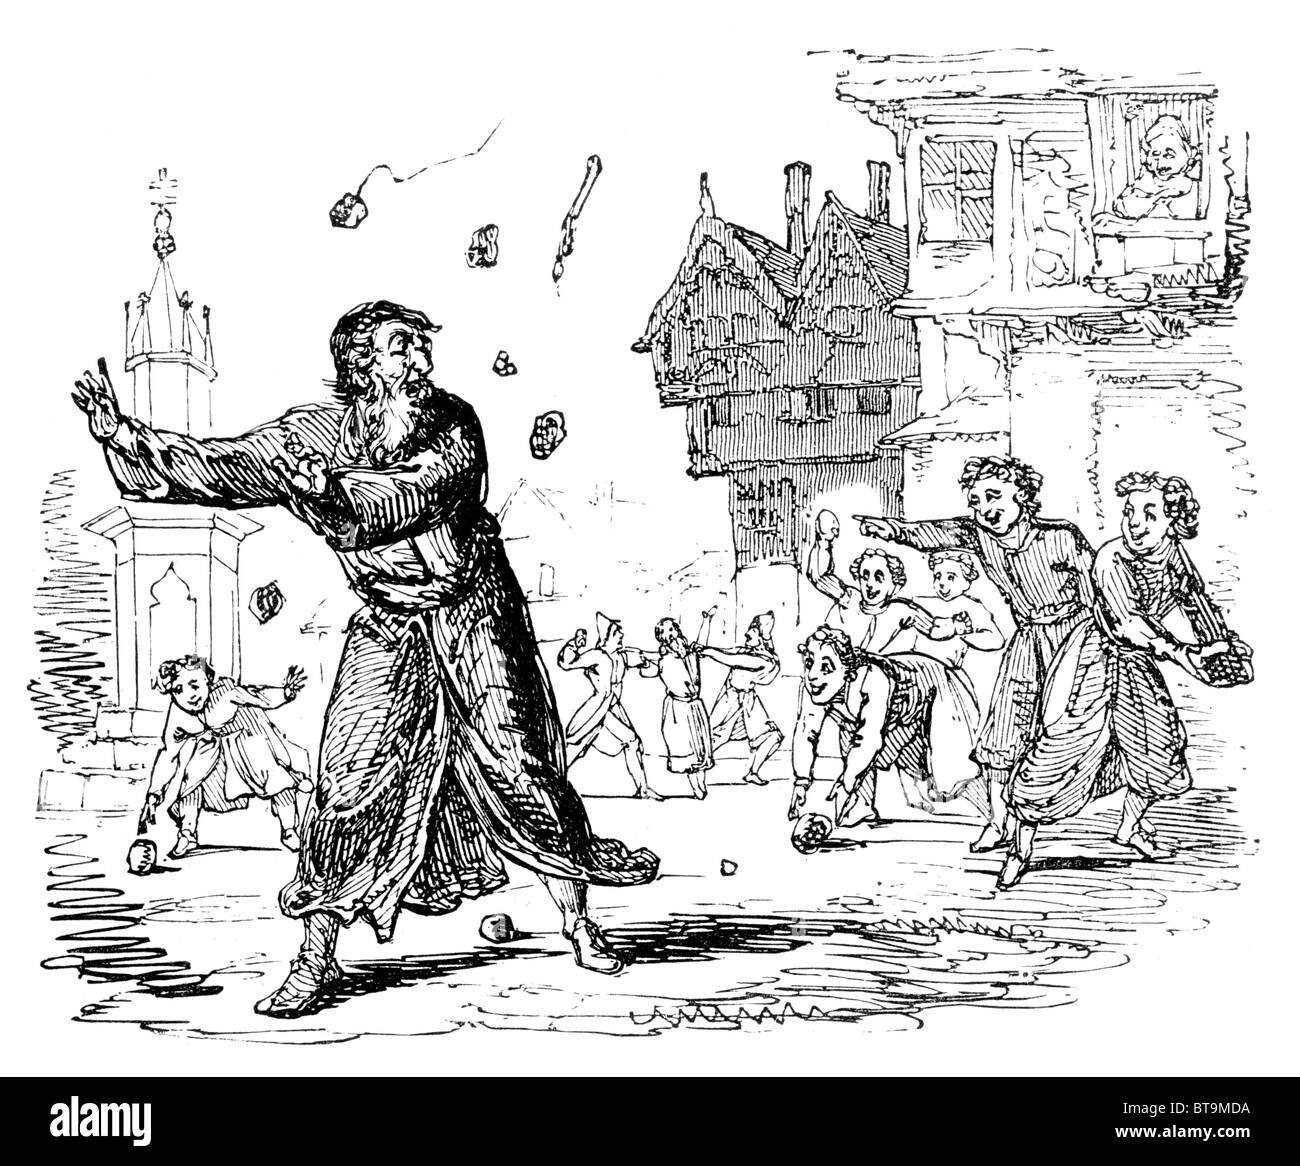 Stoning Jews in Lent; 13th century; Black and White Illustration from William Hone's Everyday Book - Stock Image